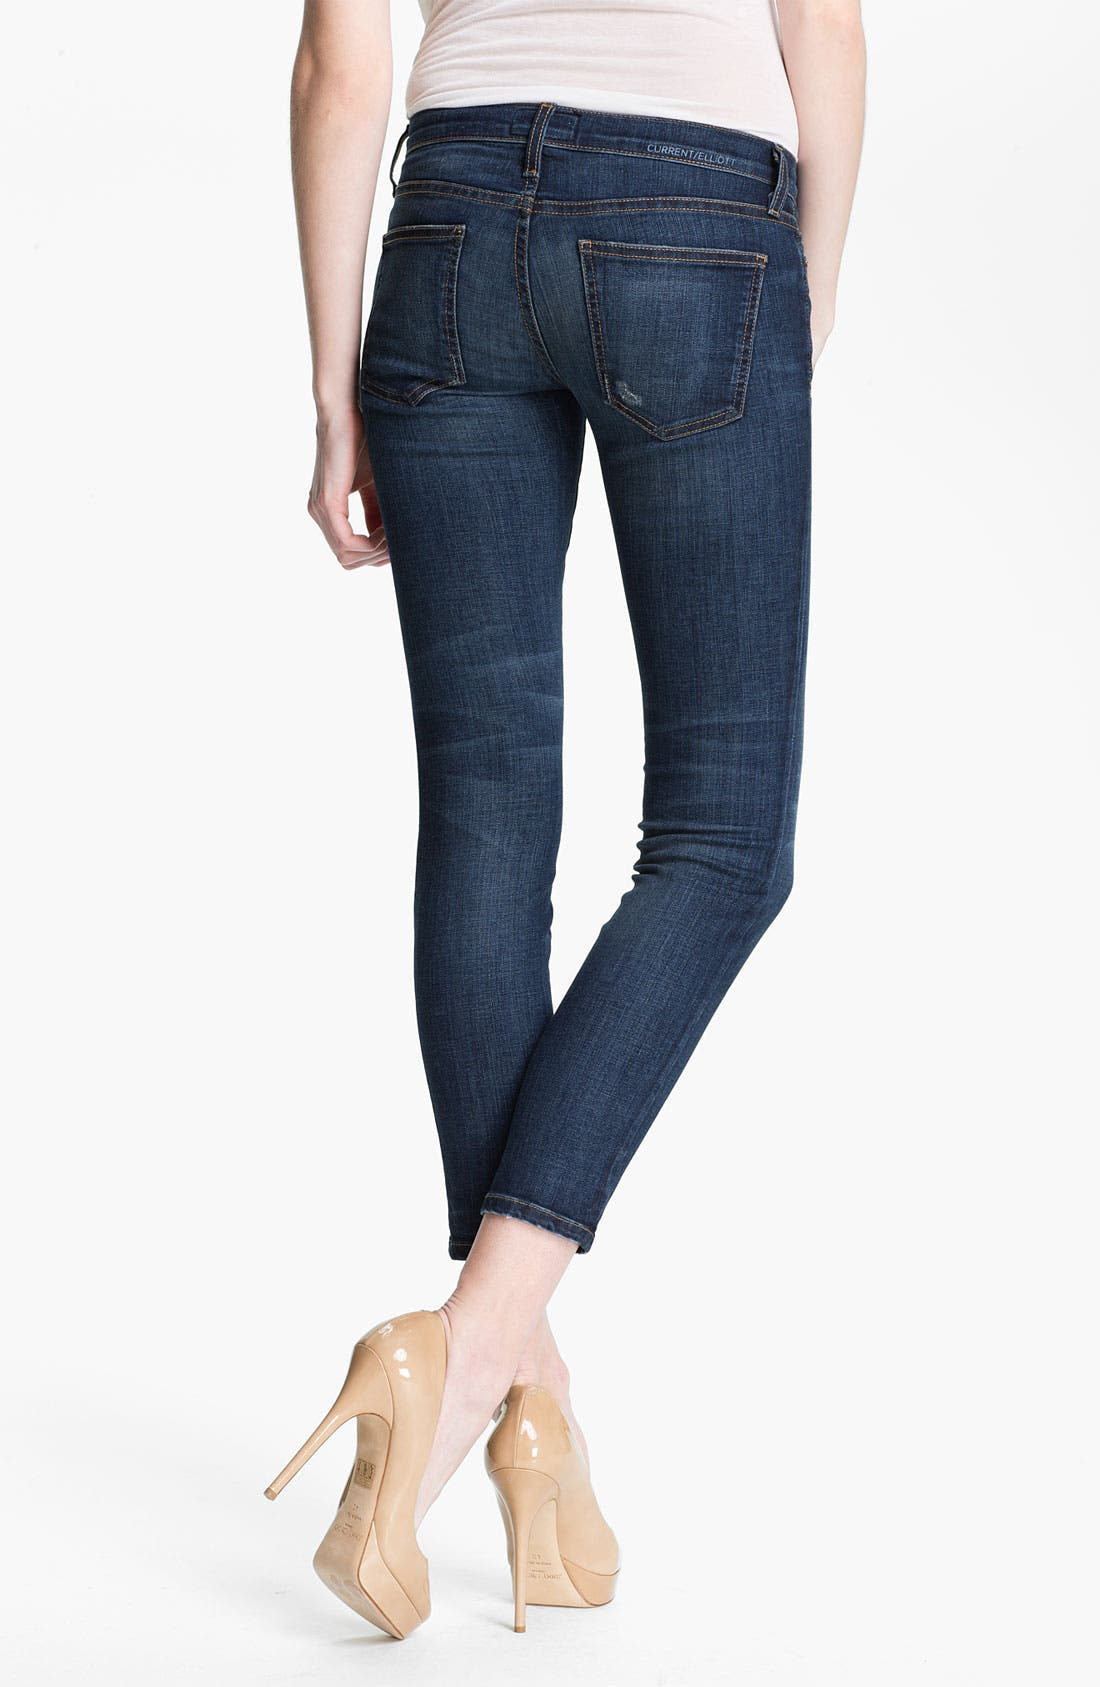 'The Stiletto' Stretch Jeans,                             Alternate thumbnail 11, color,                             477